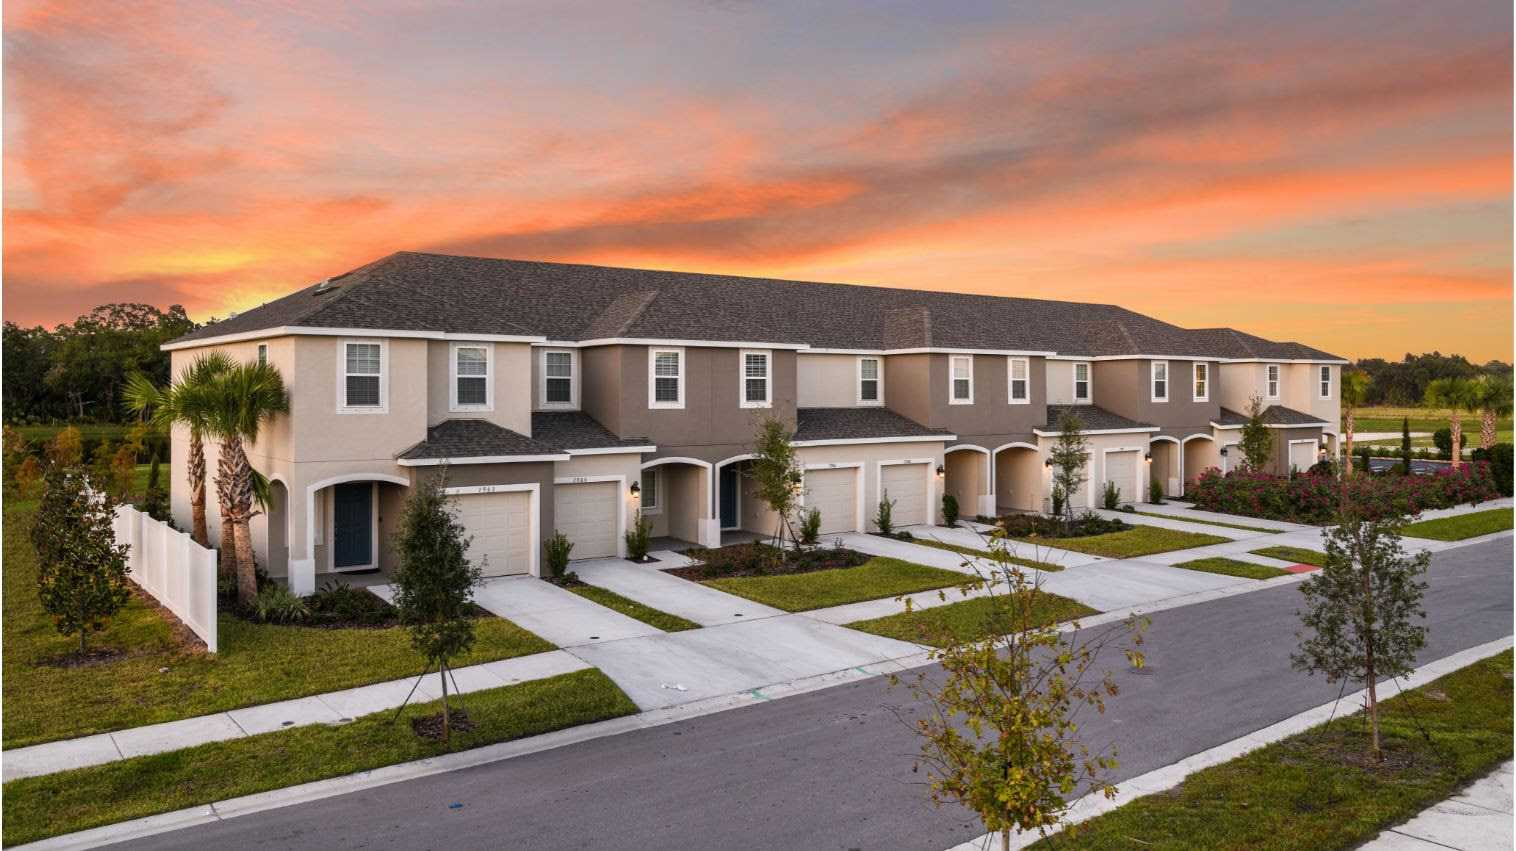 Taylor Morrison announces new town home community in Palmetto